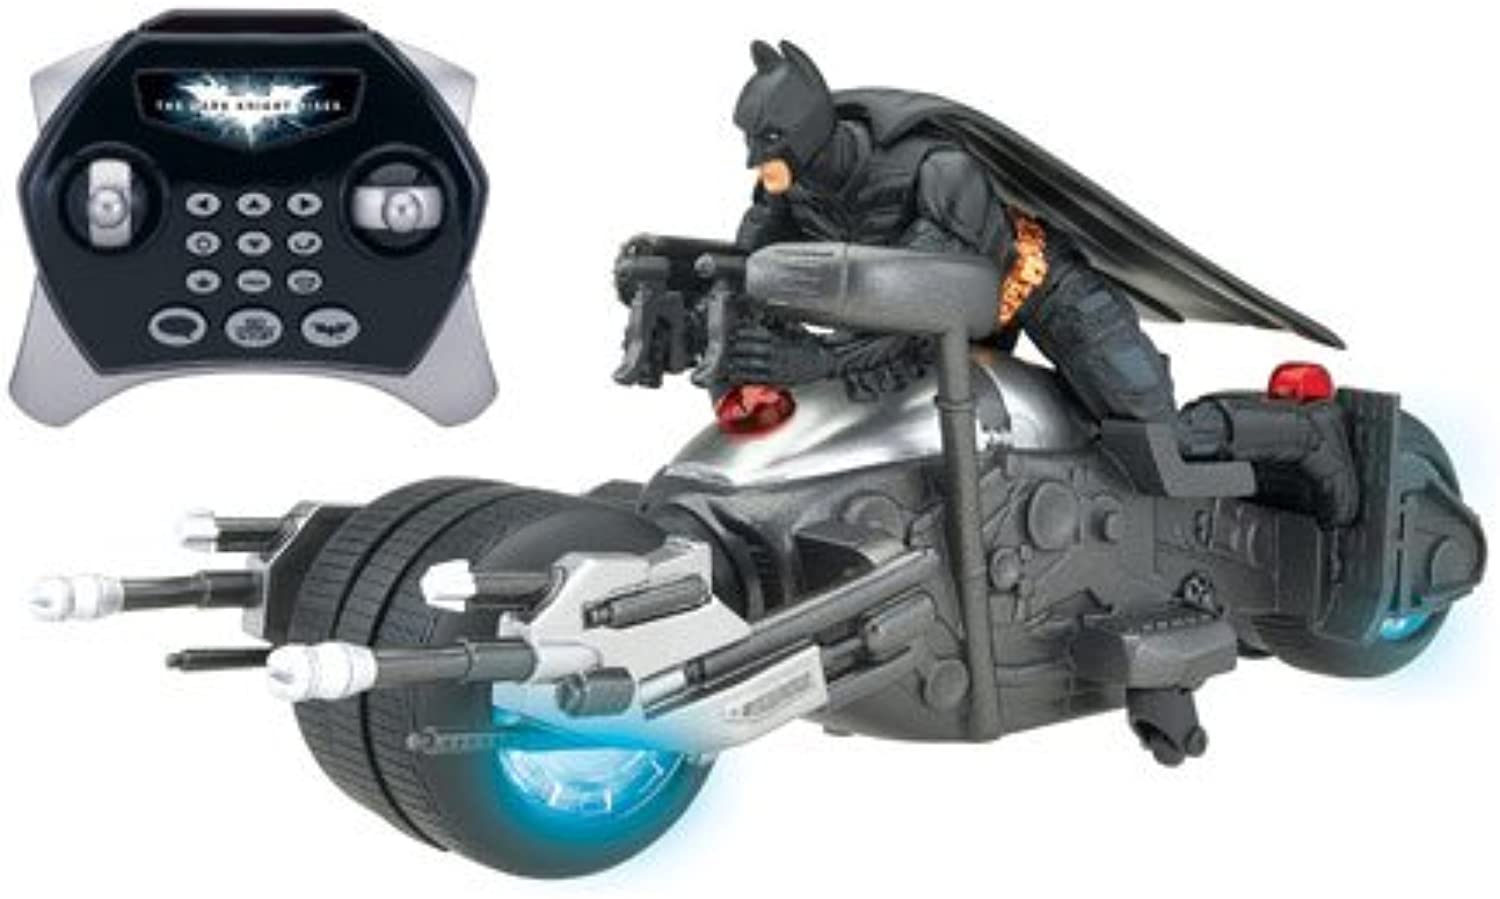 Batman The Dark Knight Rises U-Command Bat-Pod - Action Figure